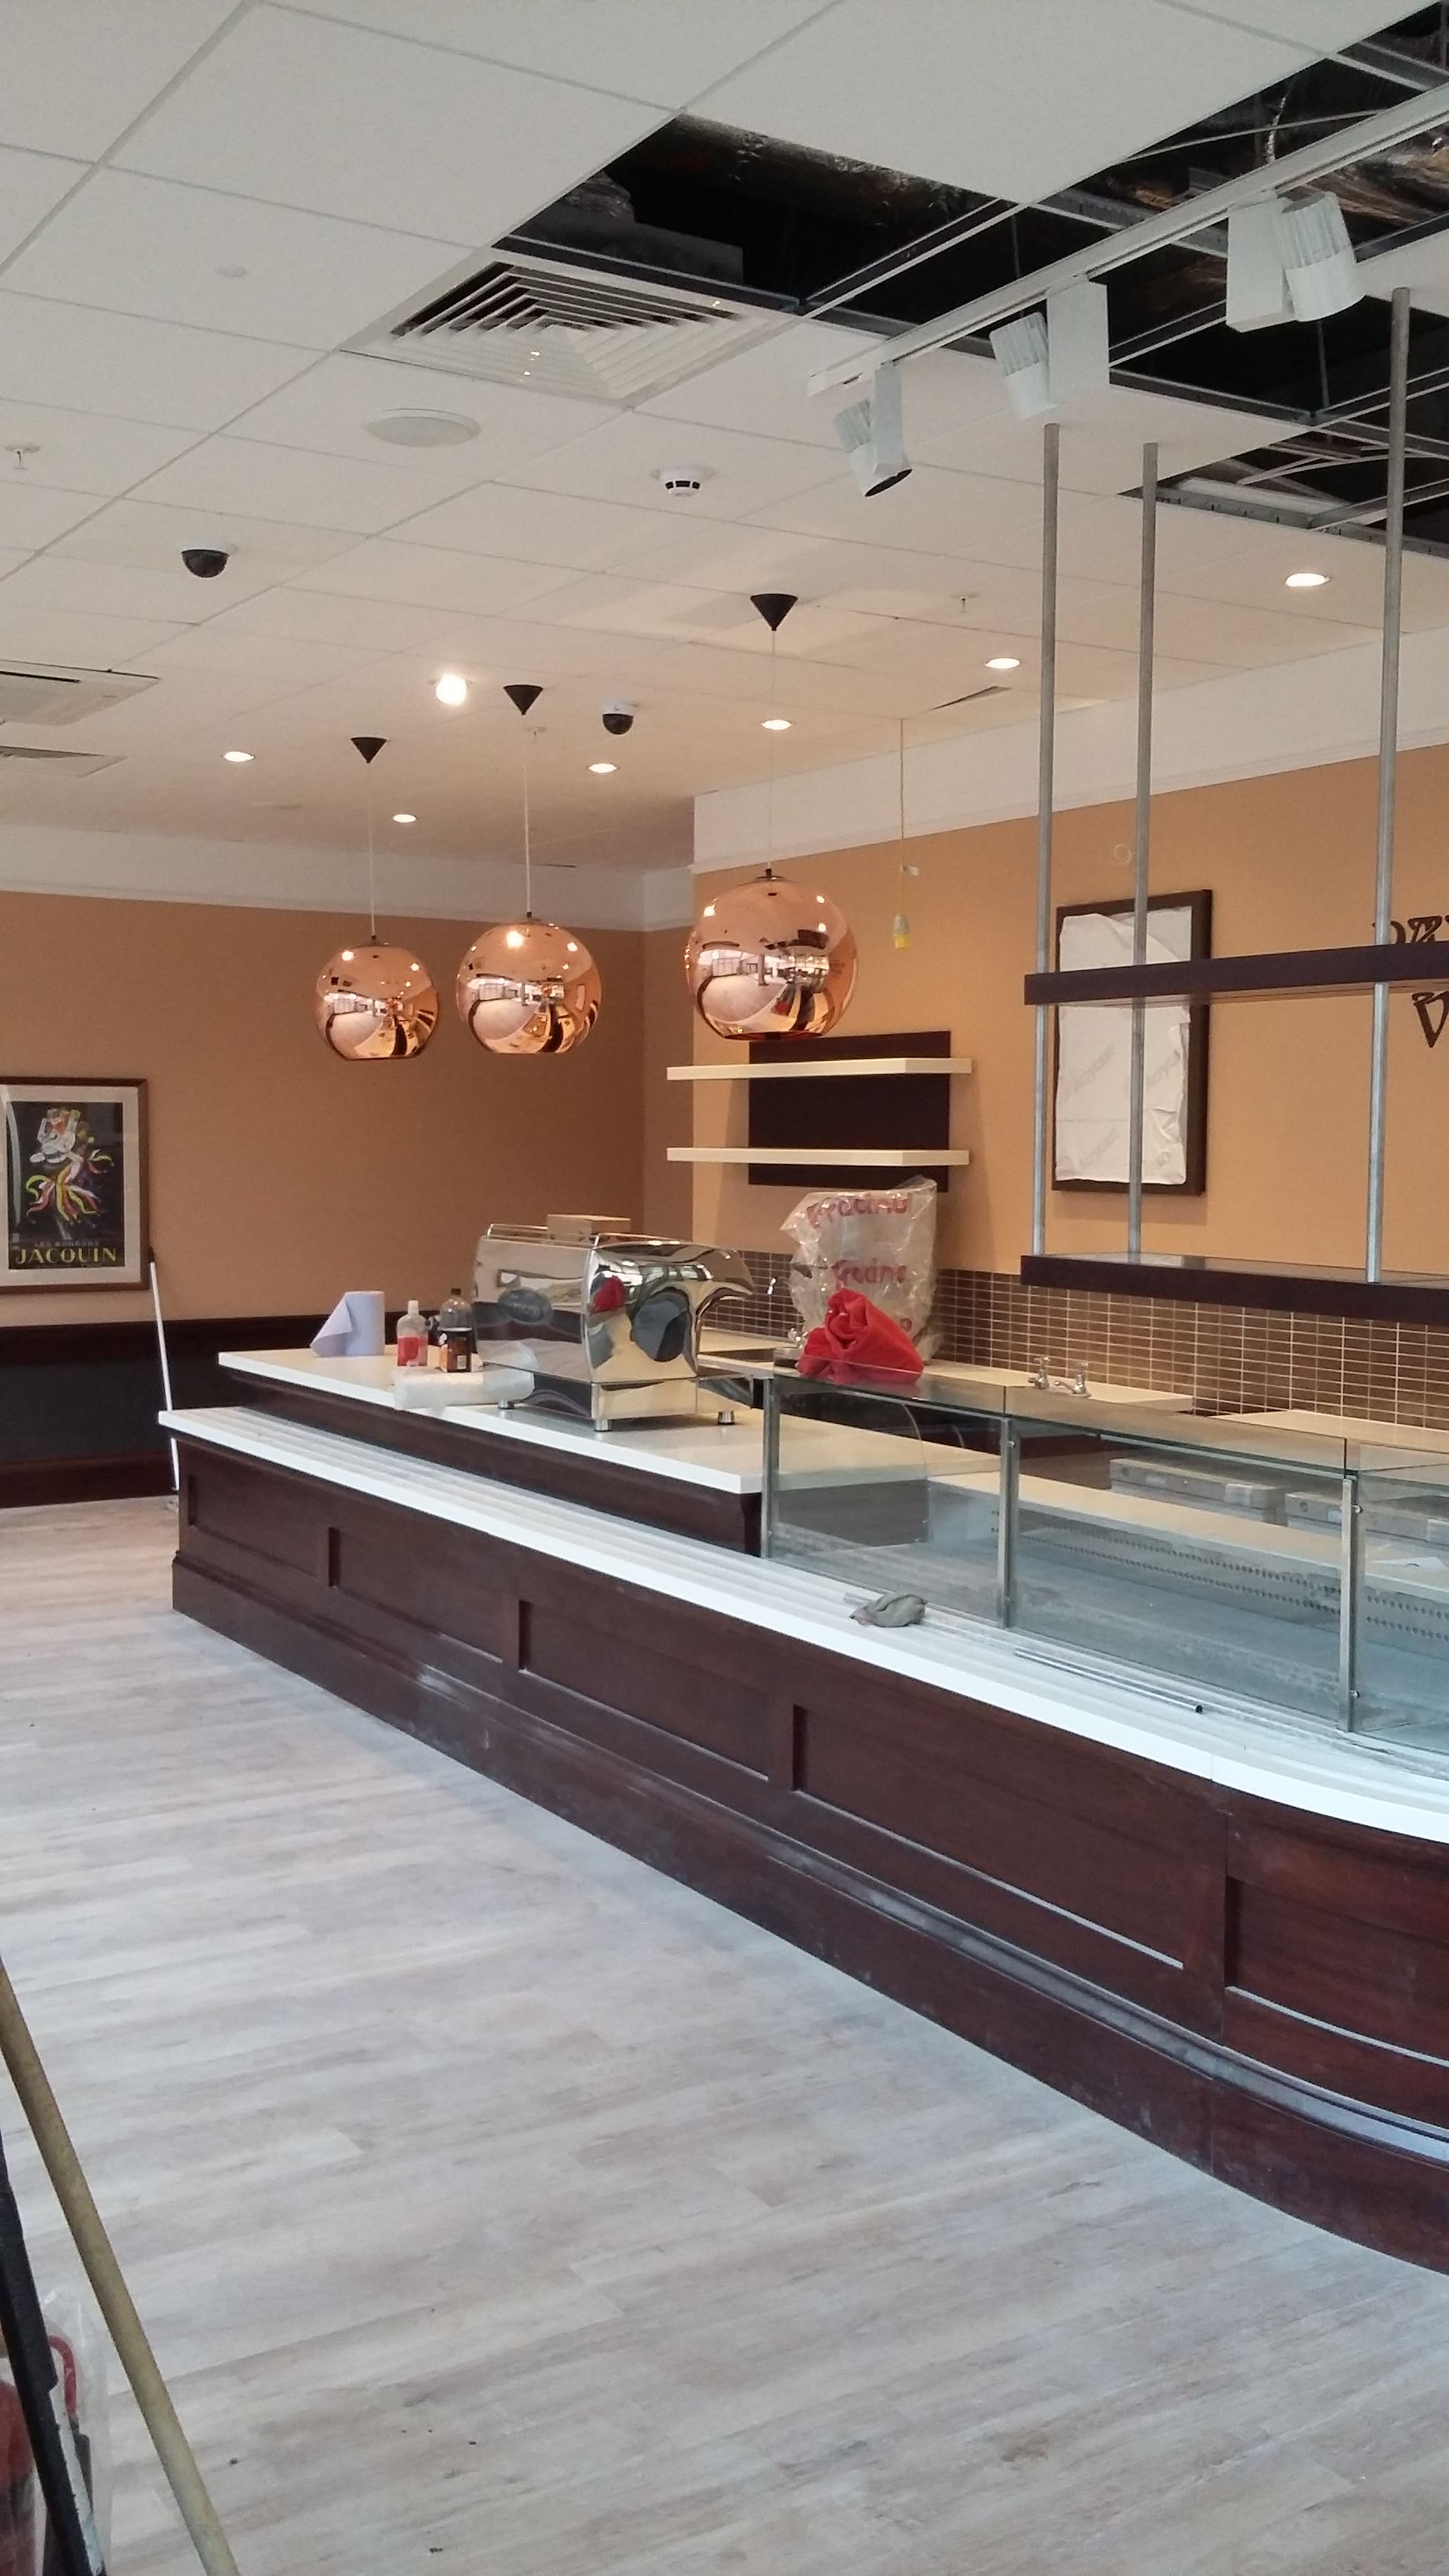 Shop Fitter Patisserie Valerie26